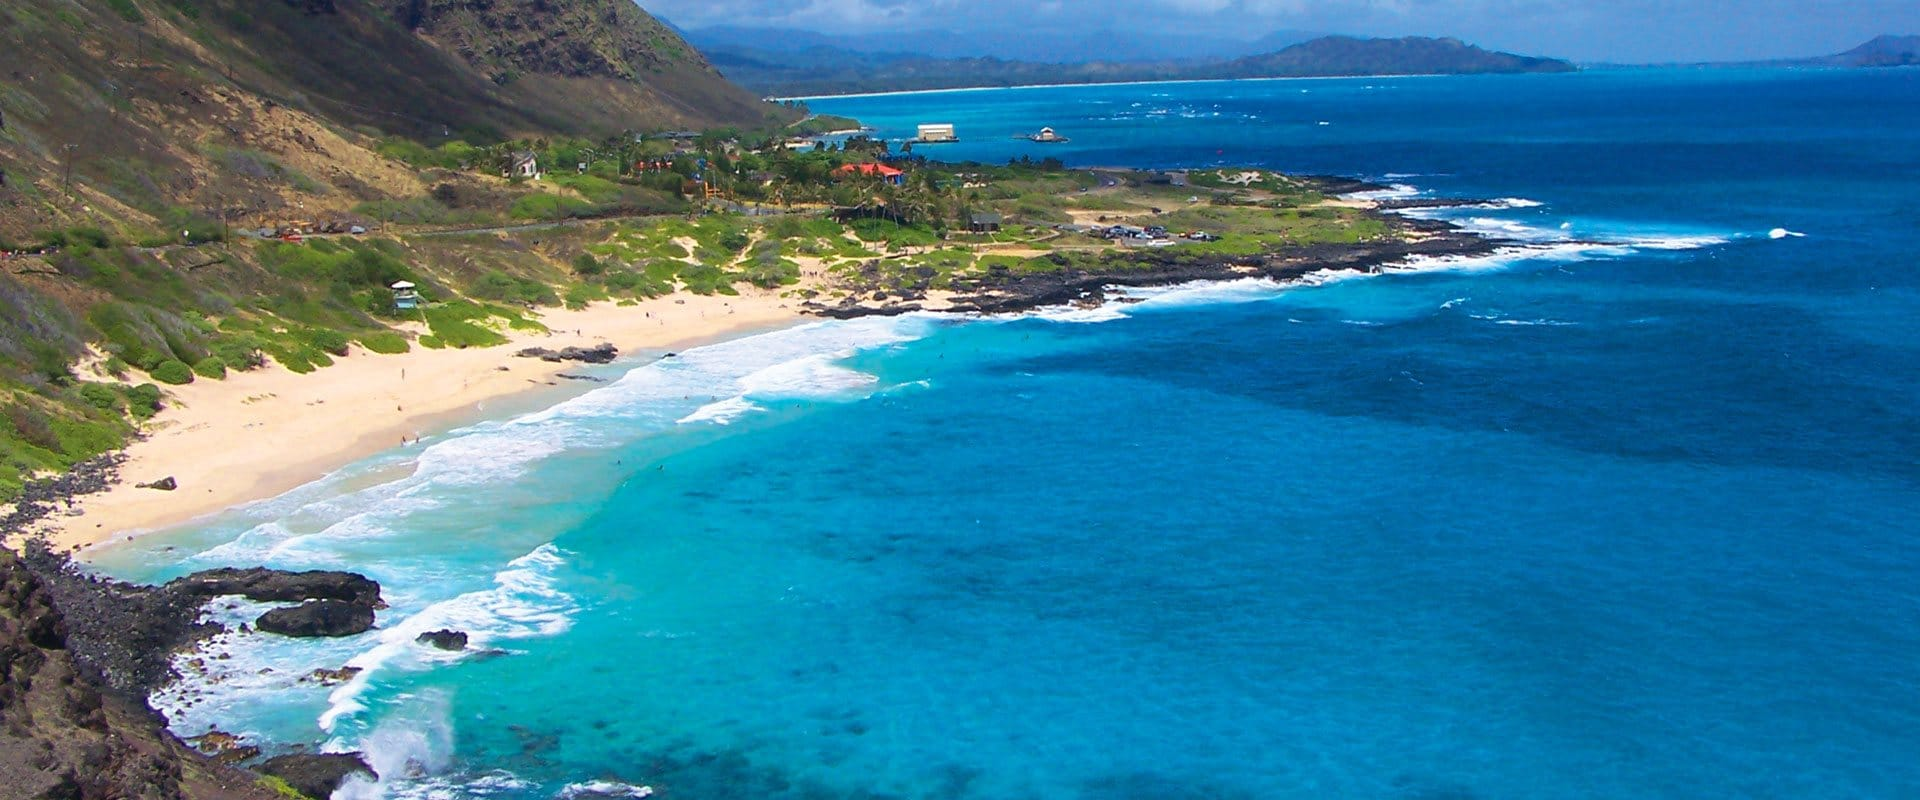 Makapuu beach and fabulous views of the Windward side